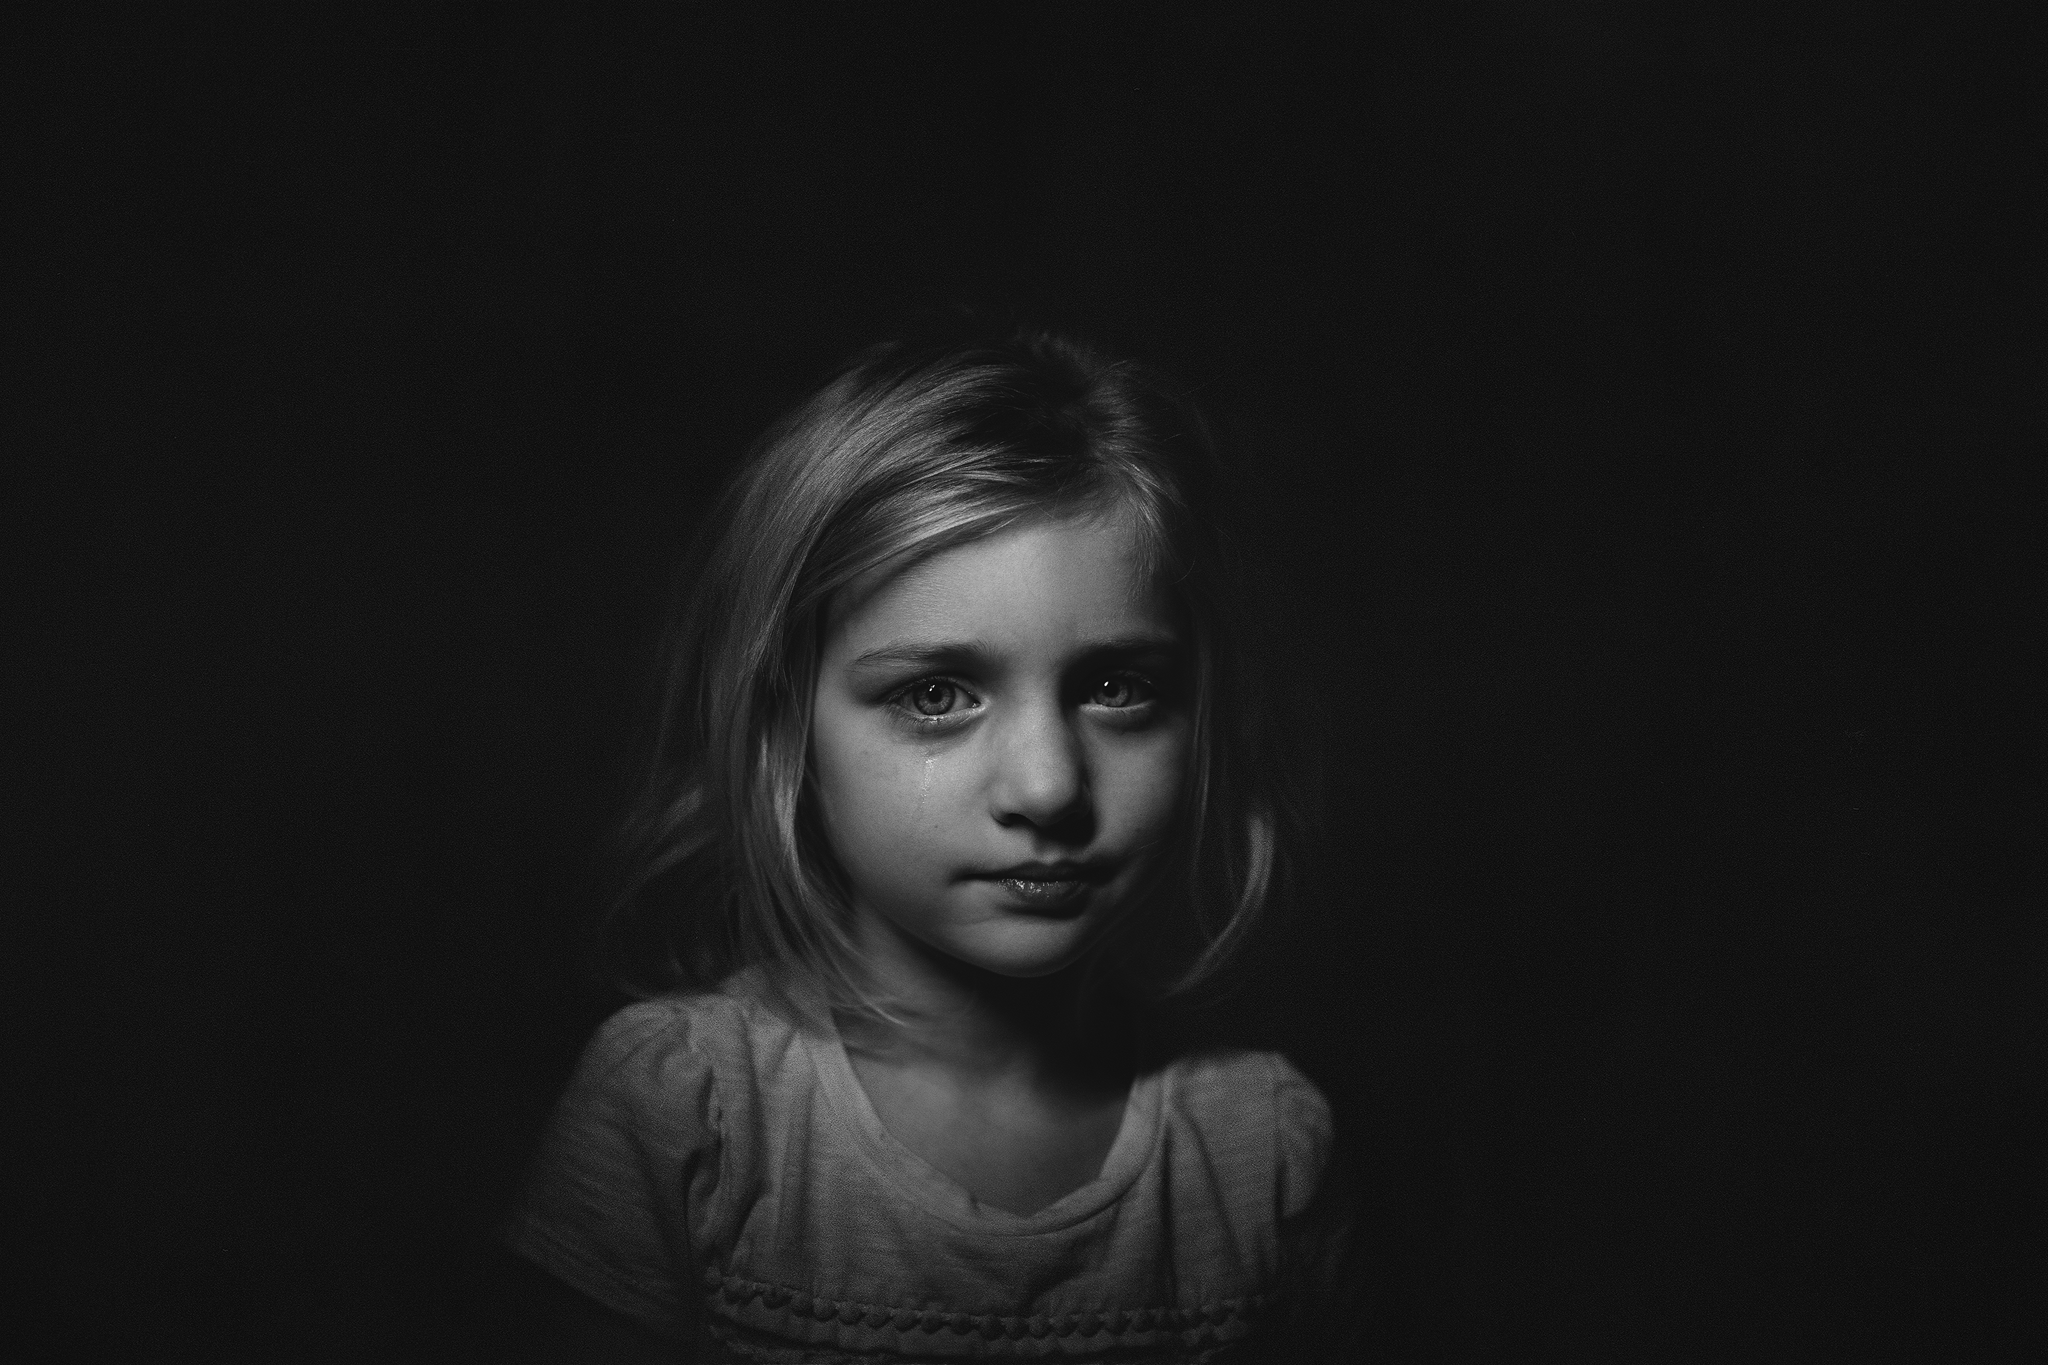 Hello-olivia-photography-sad-little-girl-cry-tear-black ...